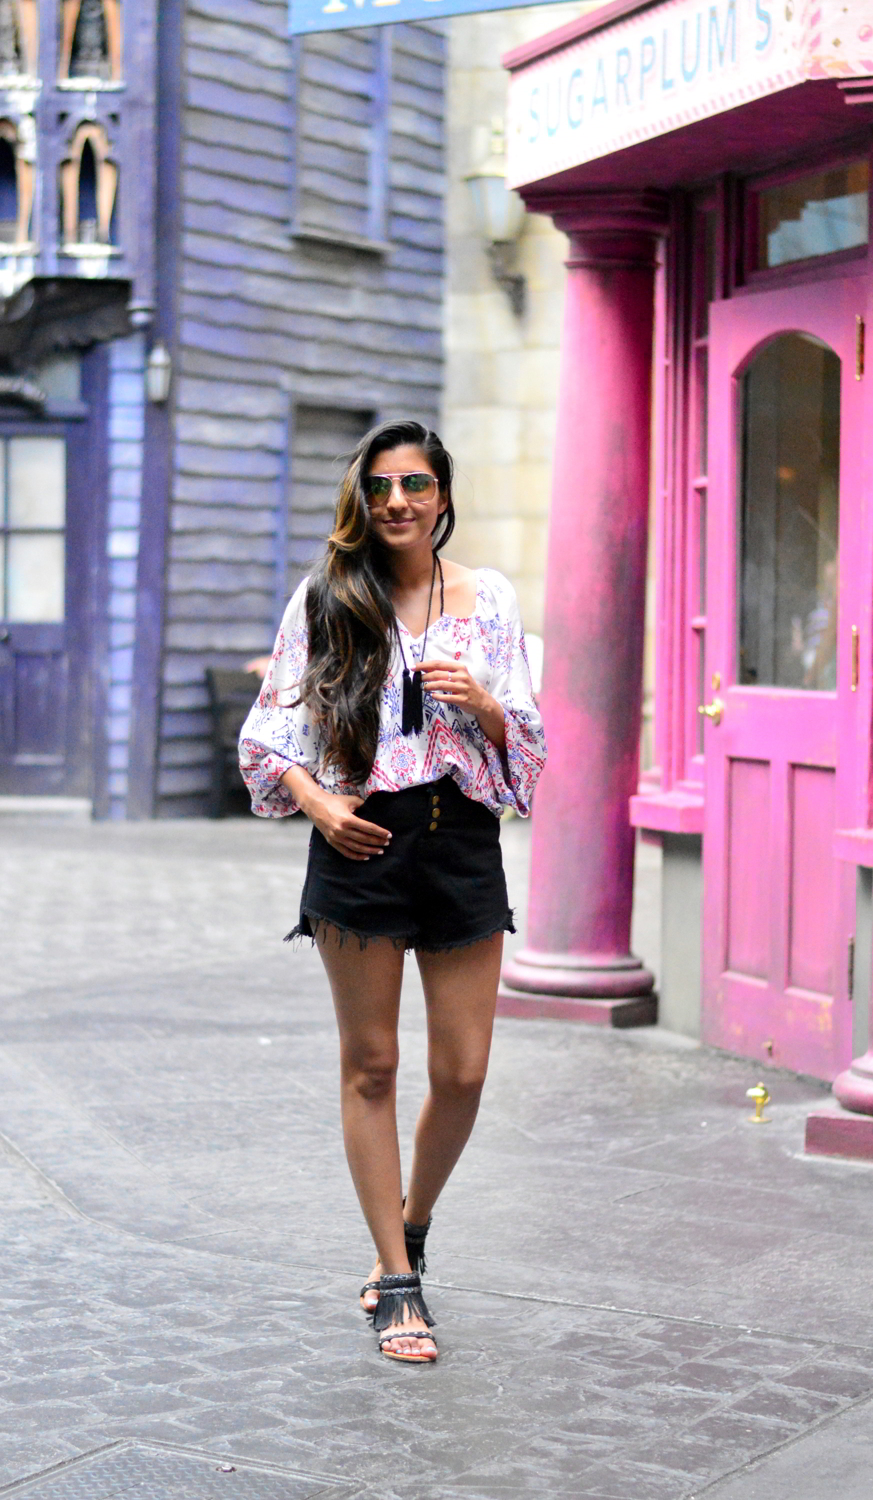 denim-highwaisted-cutoff-shorts-printed-tasseled-peasant-blouse-harry-potter-wizarding-world-outfit 7